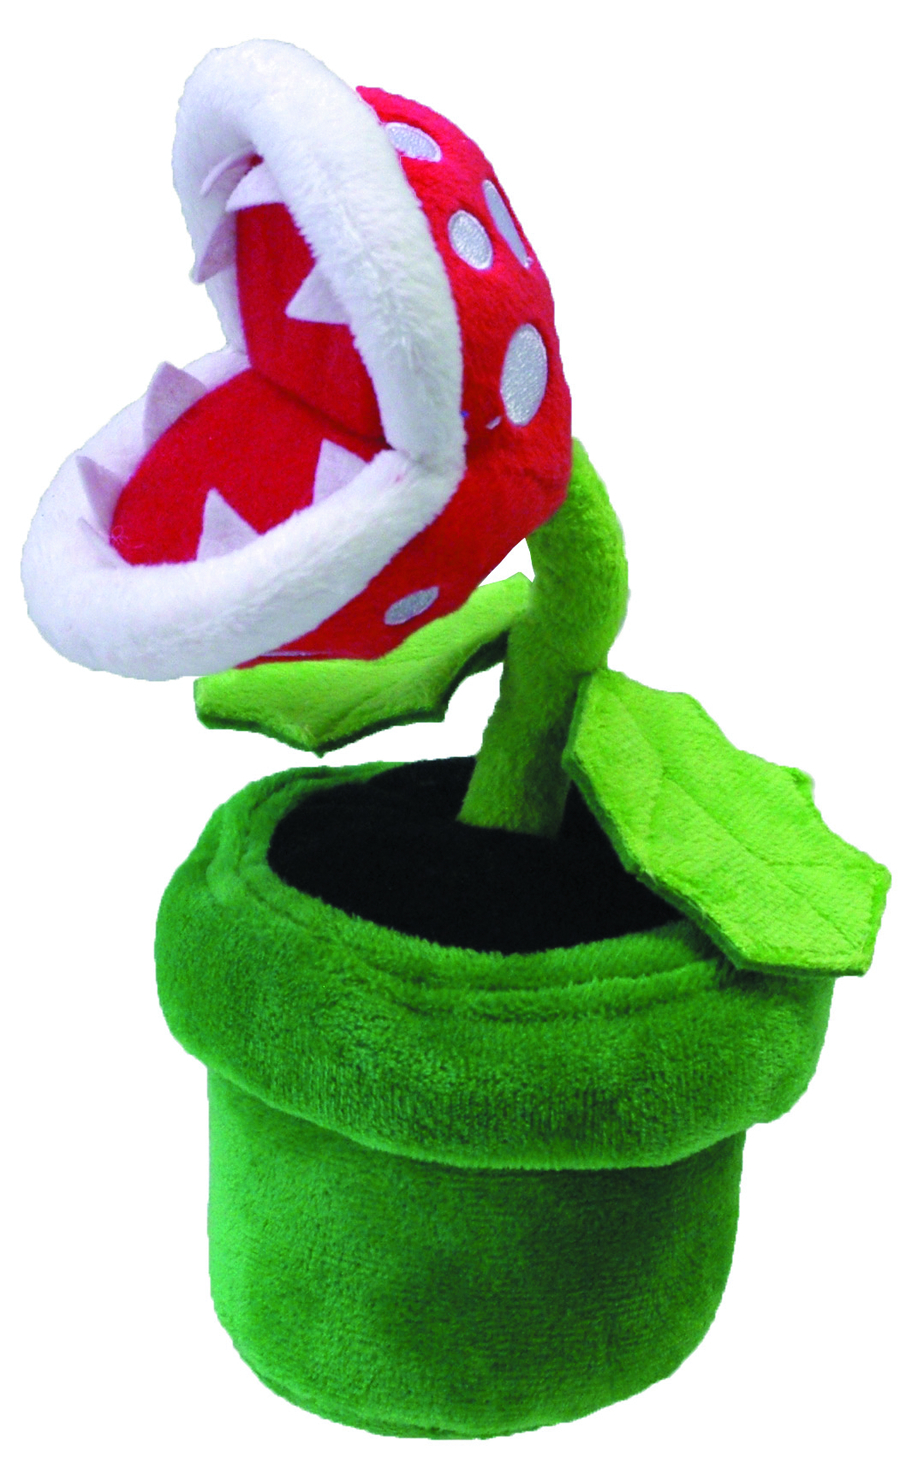 SUPER MARIO BROS PIRANHA PLANT 8IN PLUSH